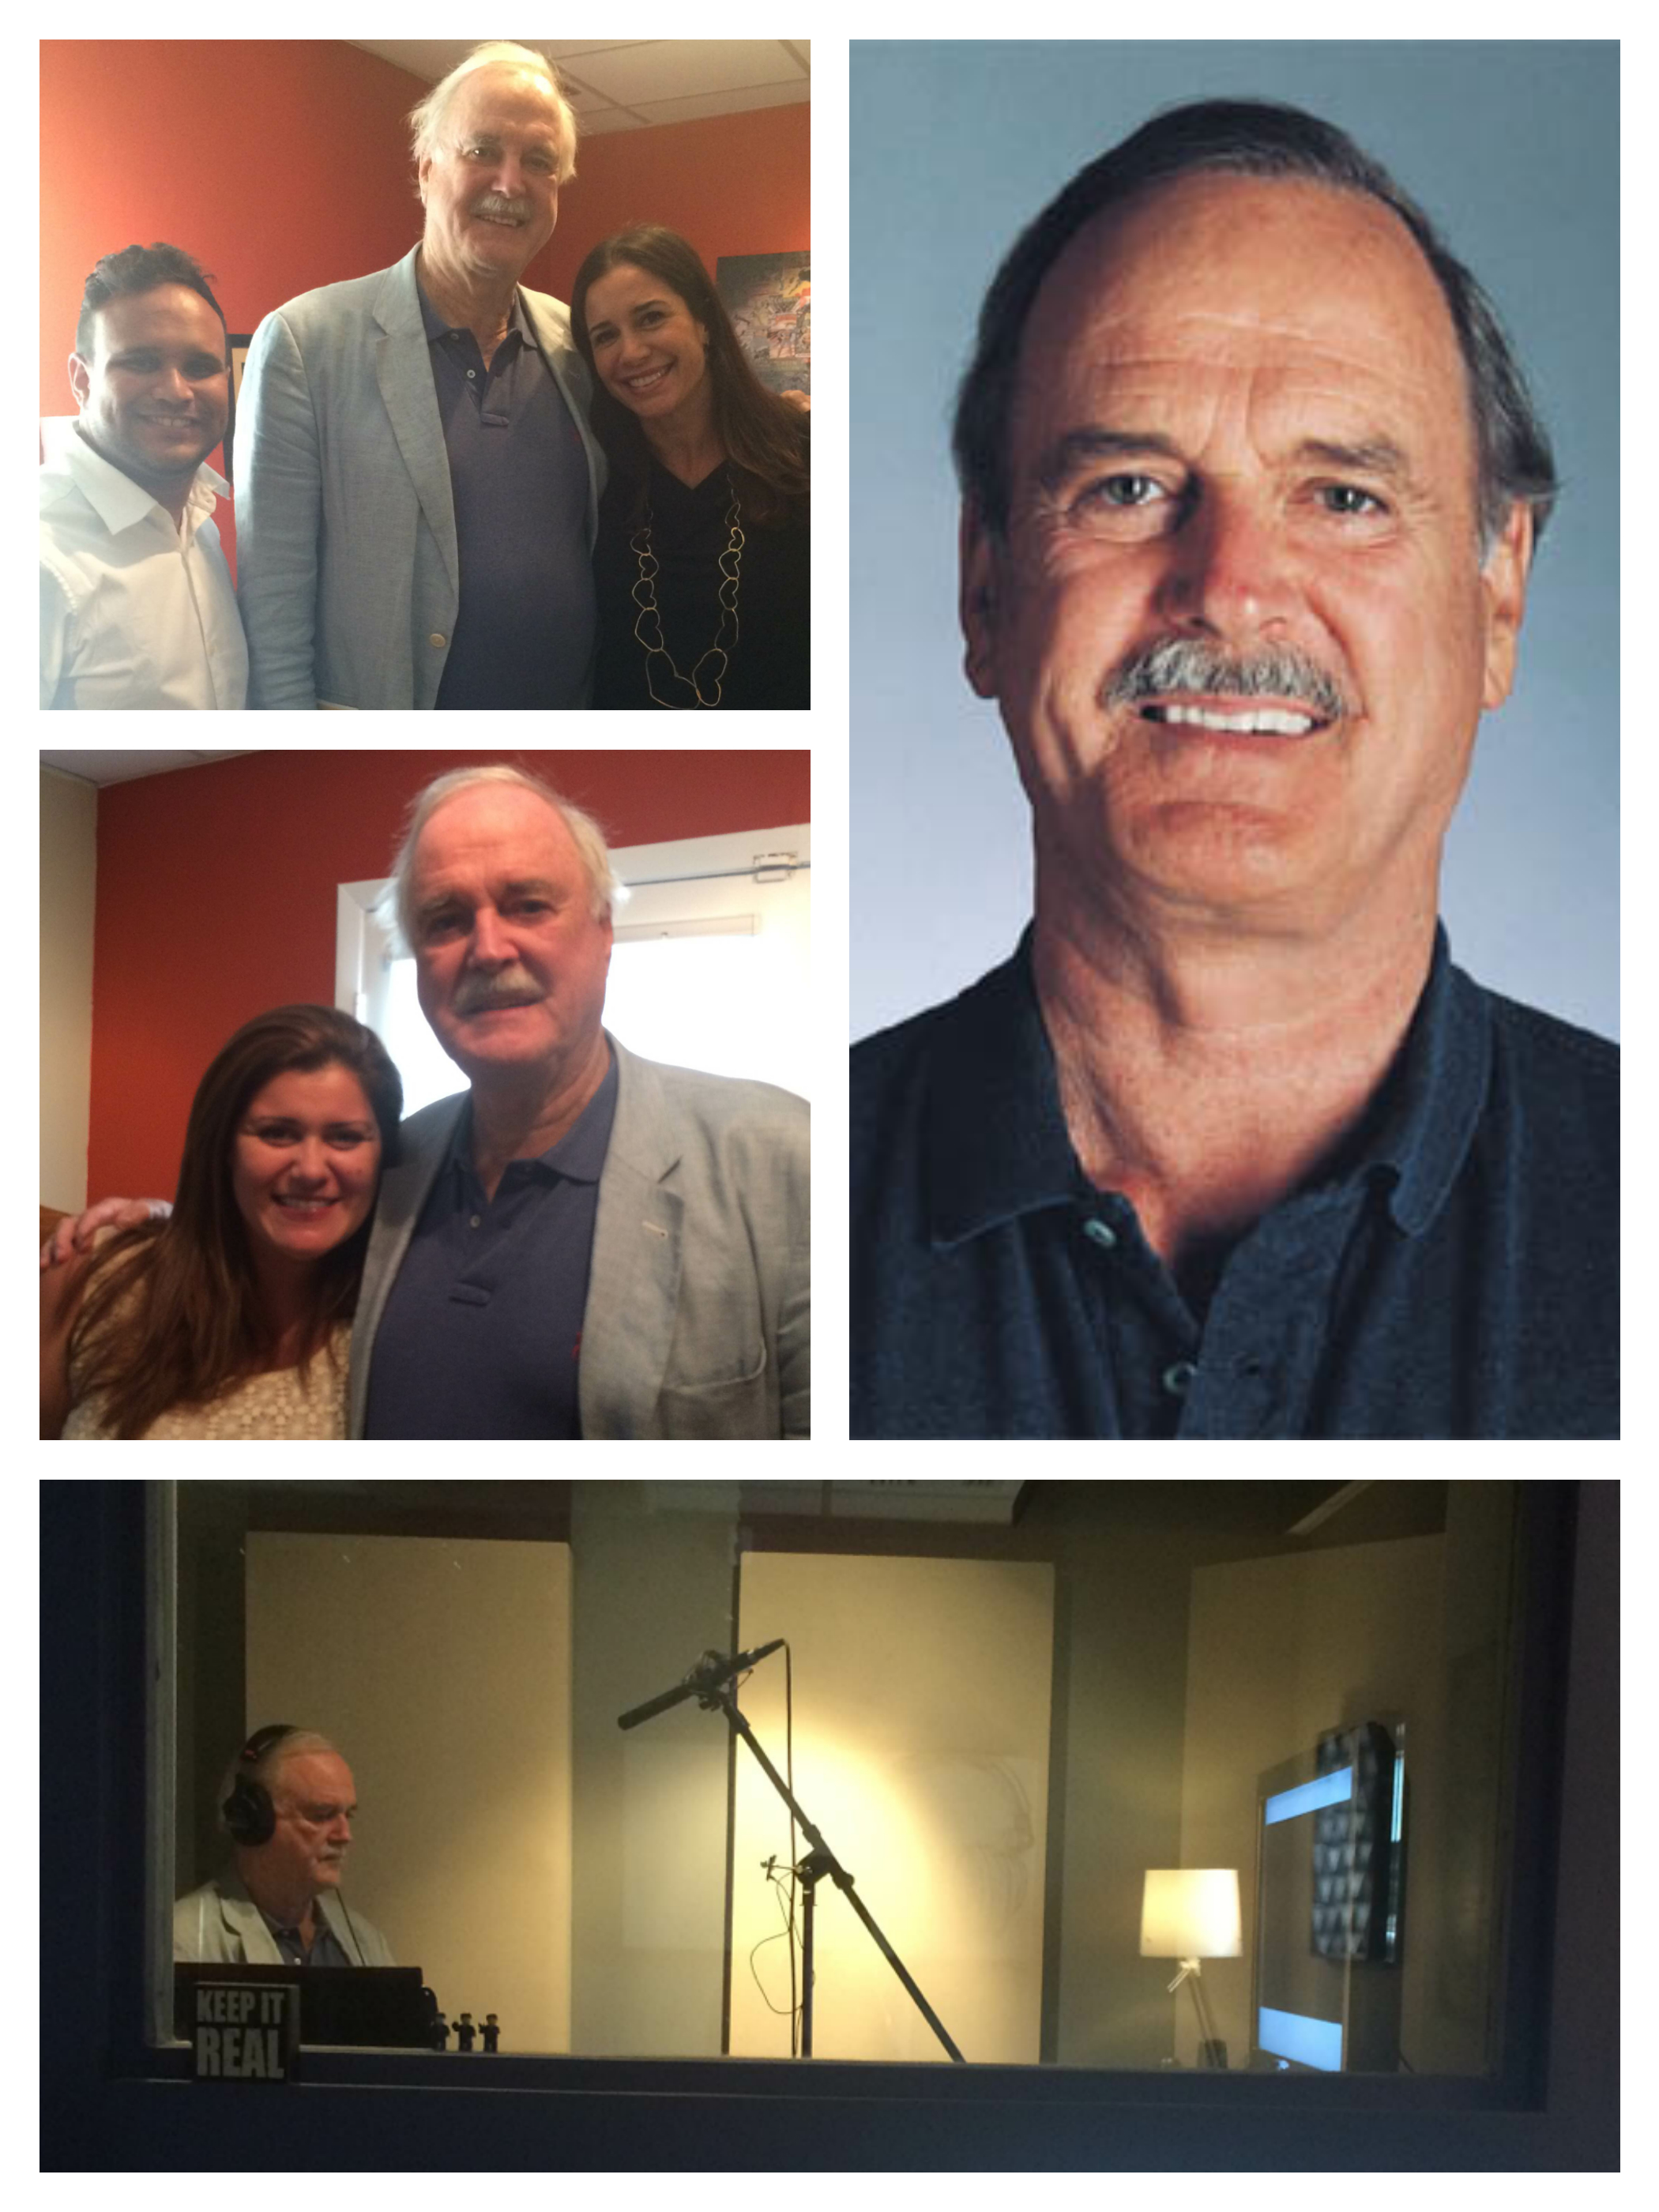 John Cleese recording an ADR for a commercial spot for Specsavers